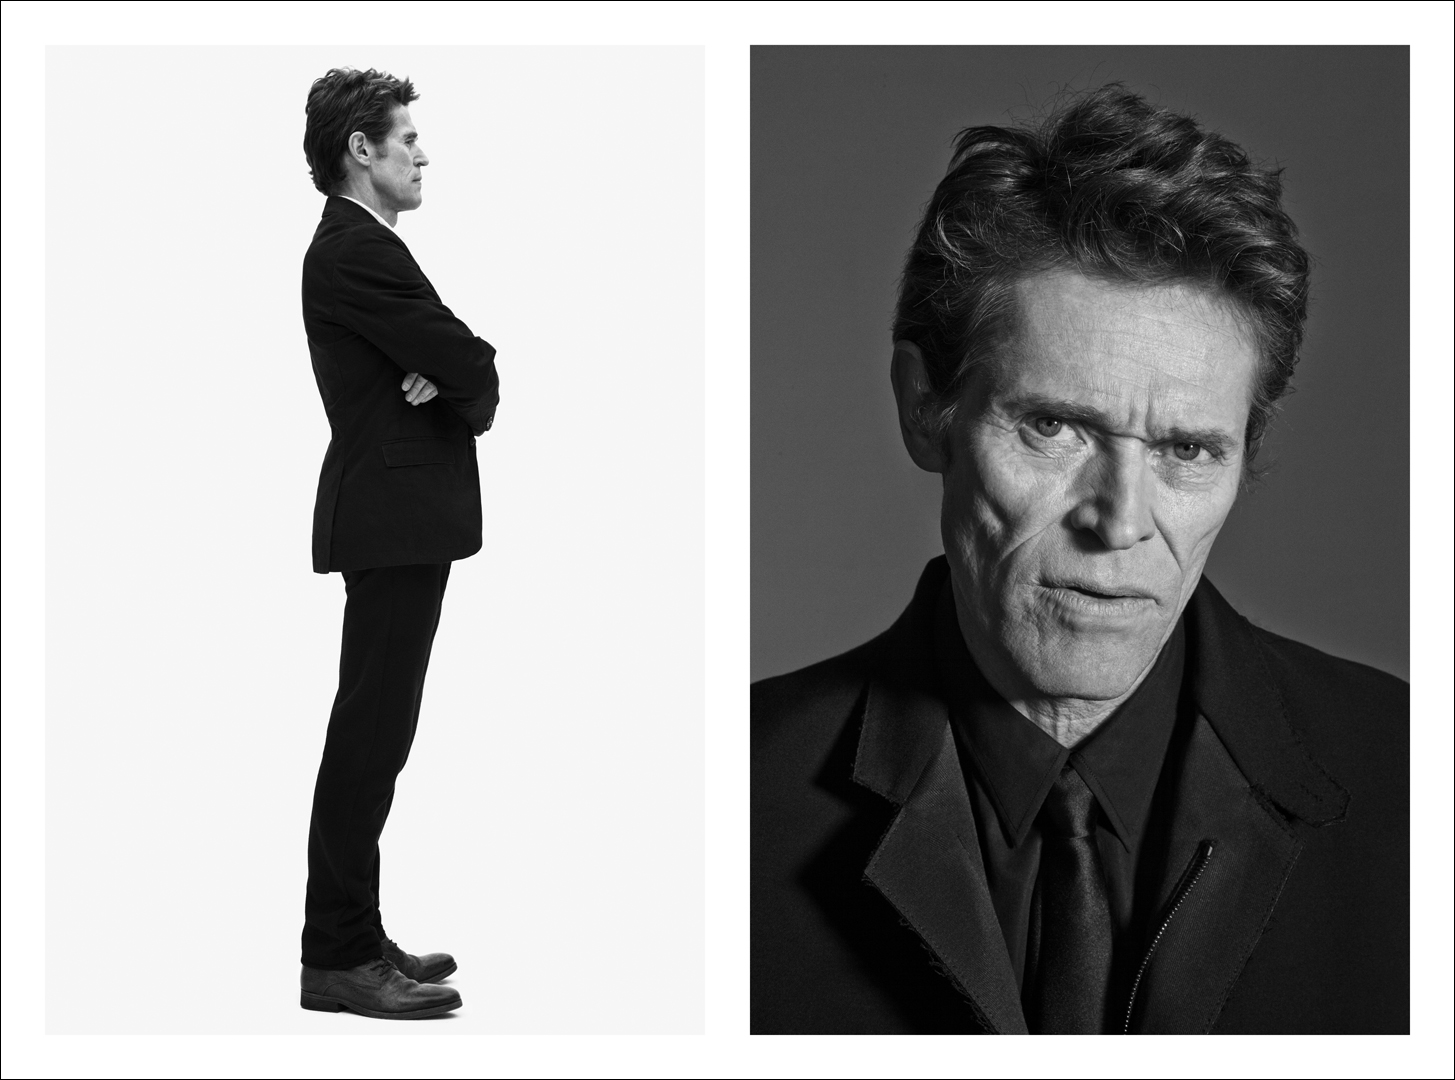 01_TIM_BARBER_WILLEM_DAFOE.jpg